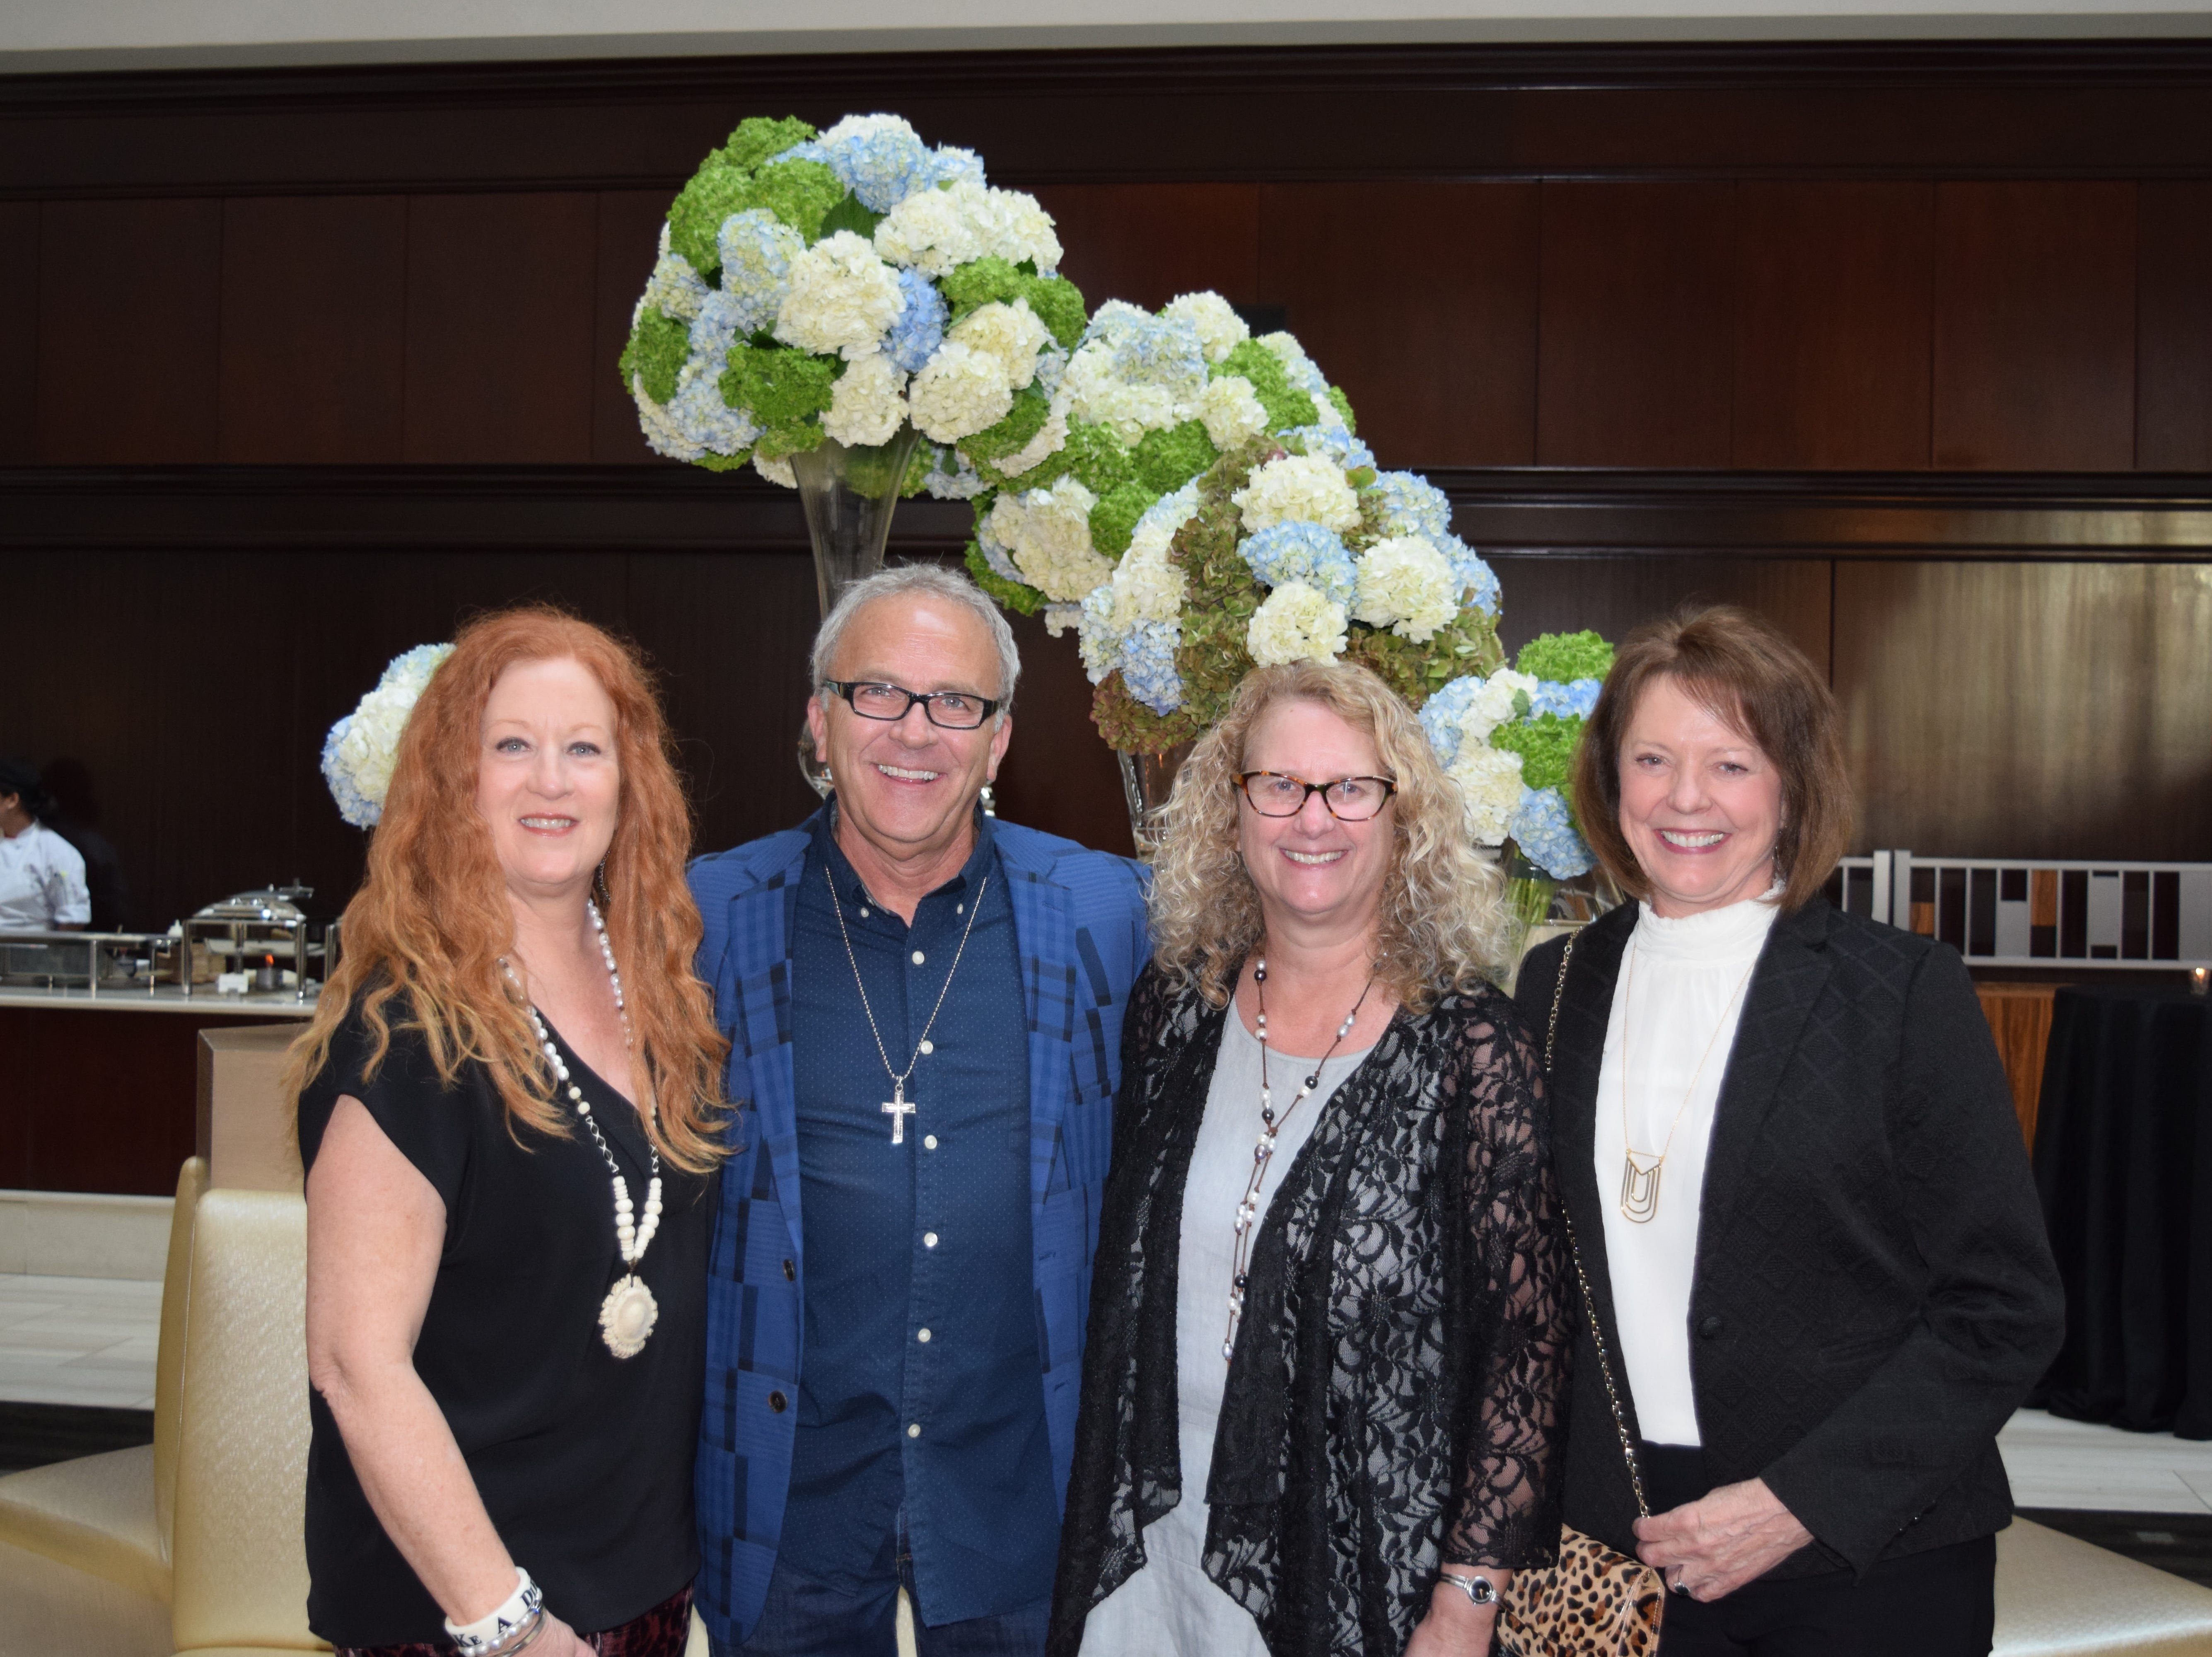 Cindy and Joe Caudle, Debbie Carter and Martha Farabee